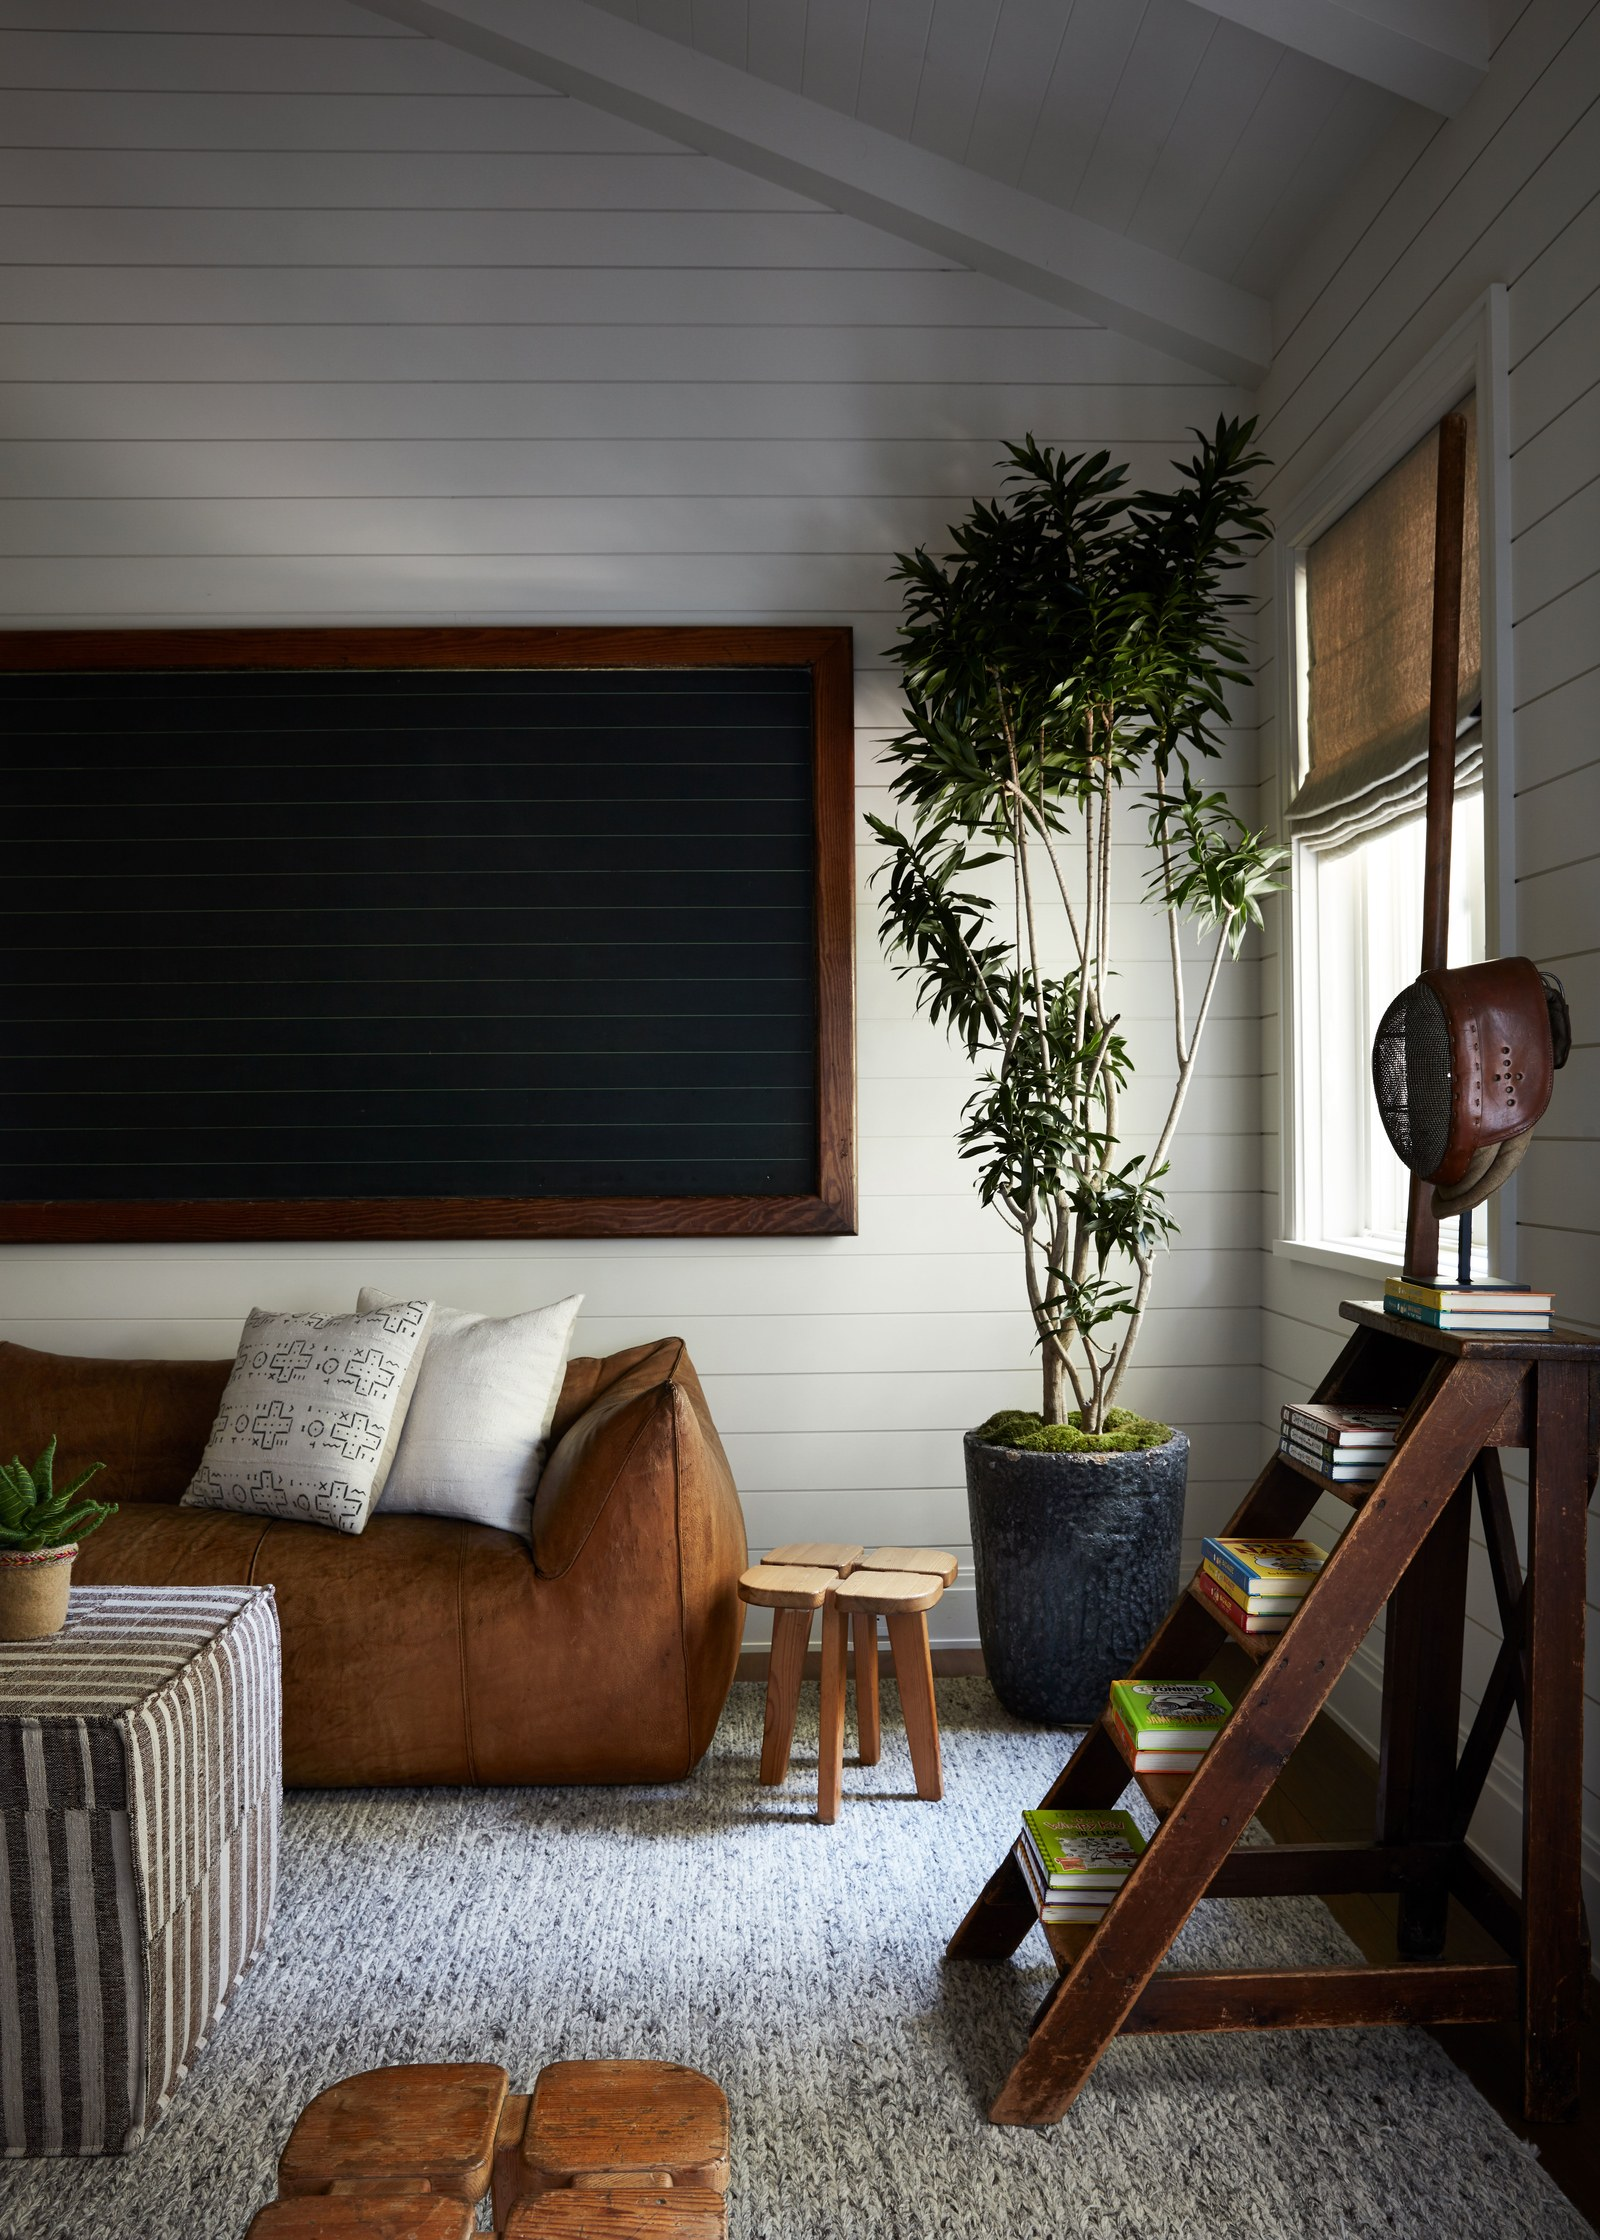 THe Nordroom - A Warm Los Angeles Home Packed with Vintage Furniture and Art